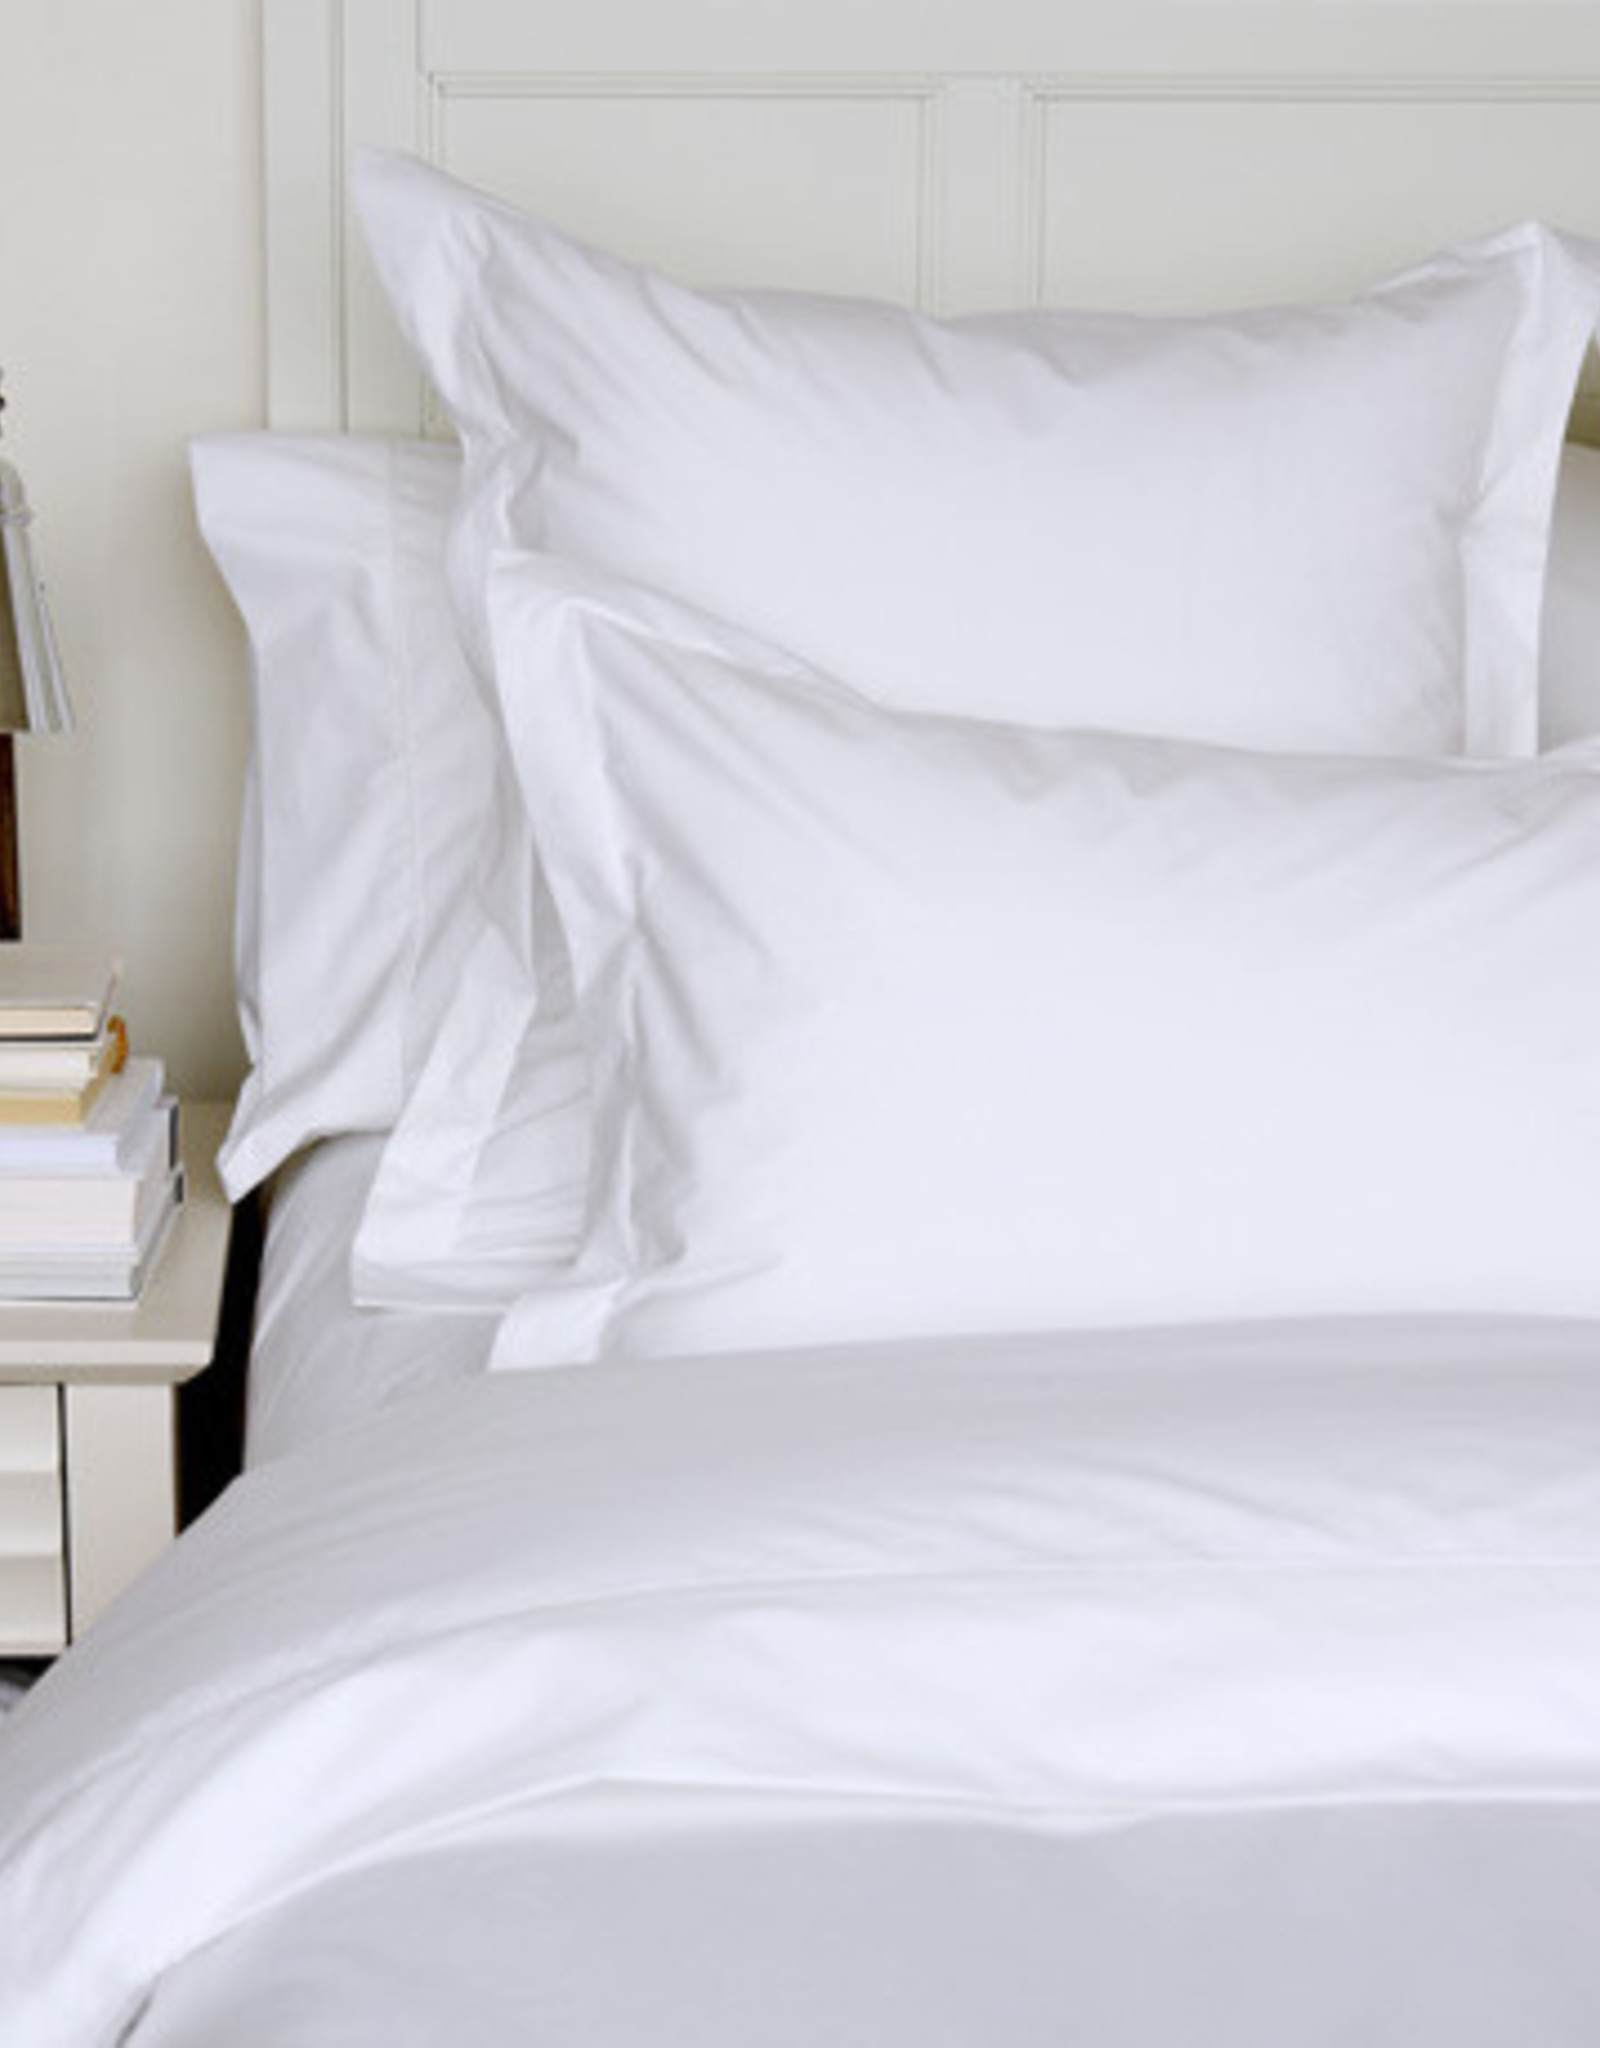 Cuddle Down Sheets Cuddledown Impressions 500 King Fitted